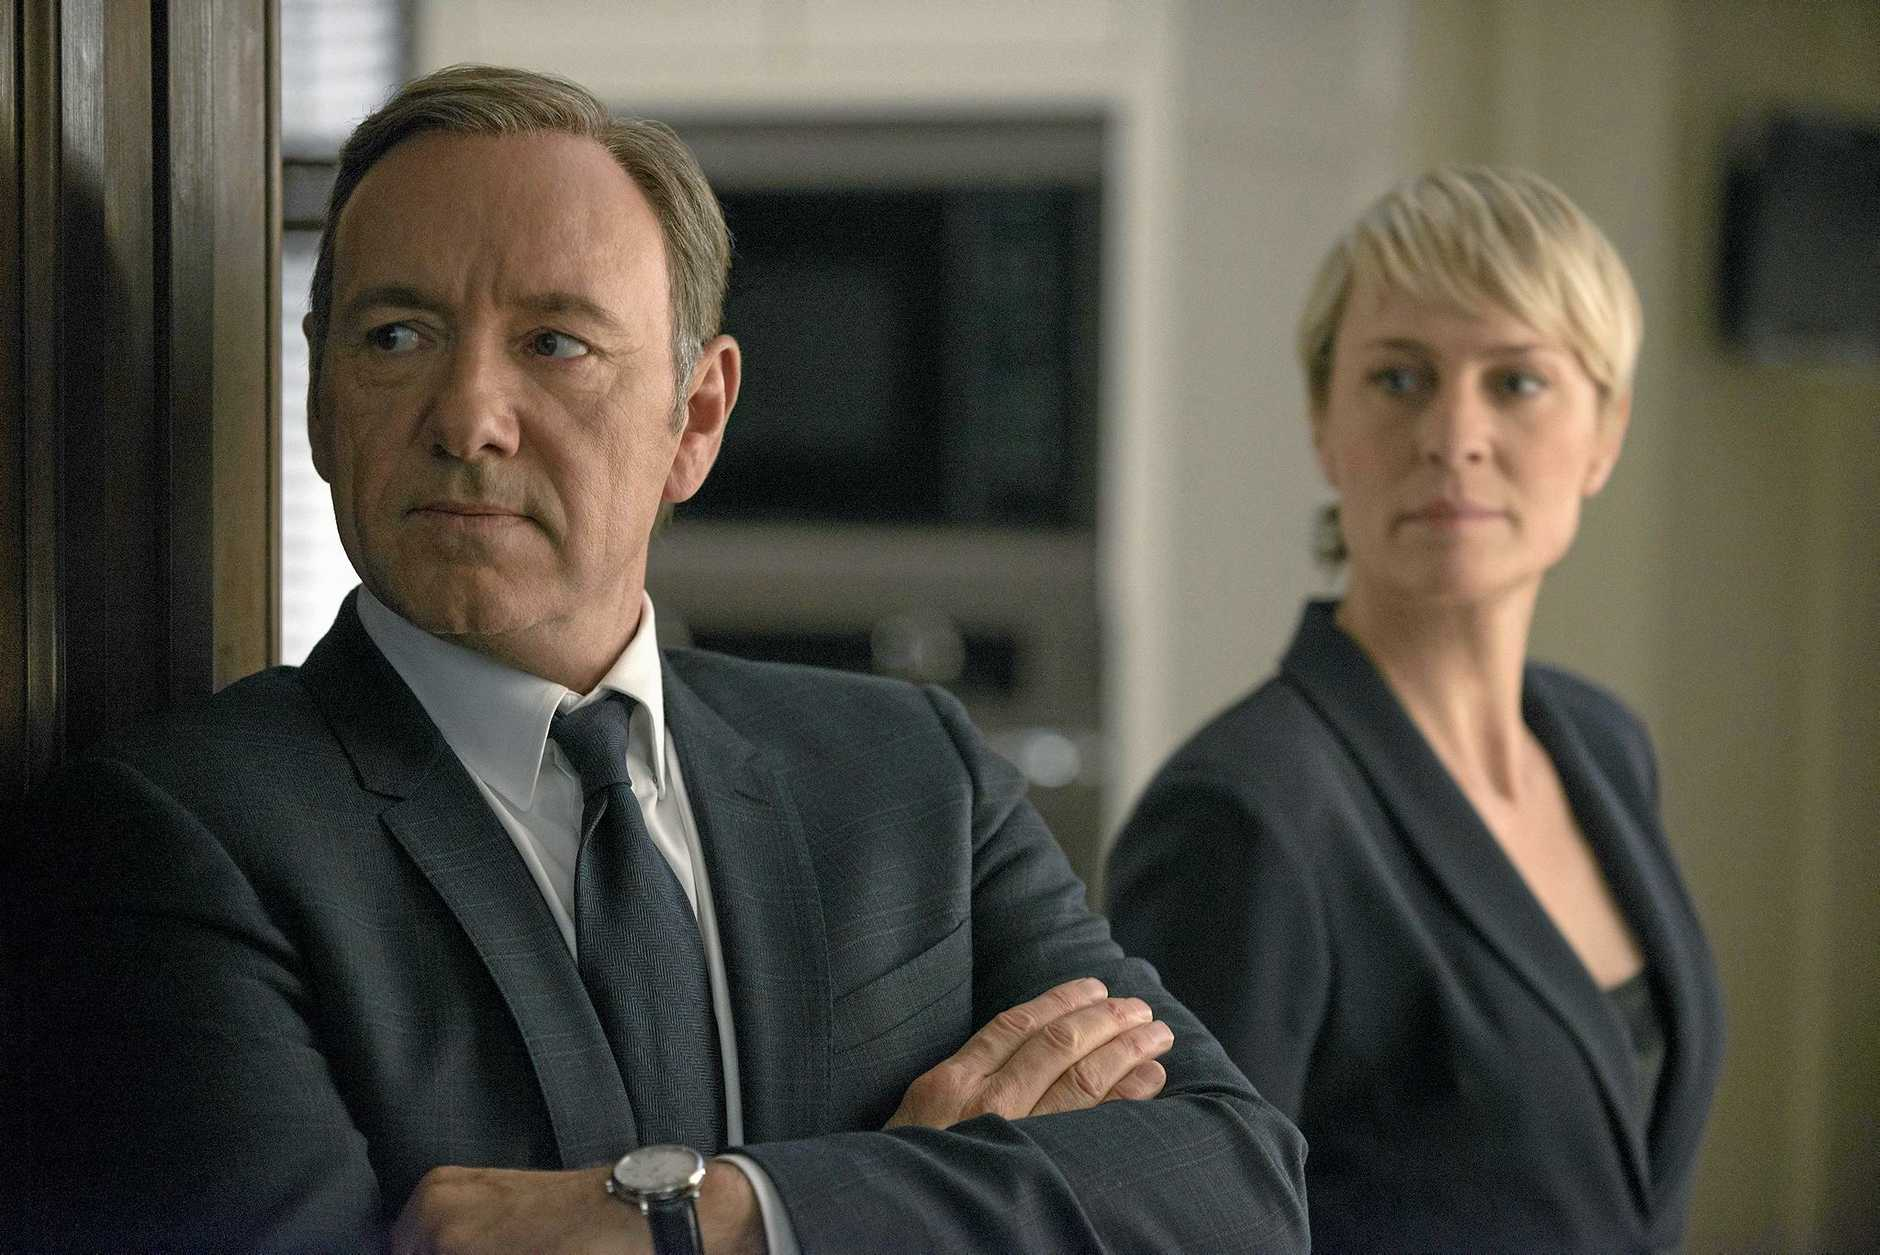 Kevin Spacey and Robin Wright in a scene from the TV series House of Cards (s2). Supplied by Foxtel publicity. Please credit photo to Nathaniel Bell.